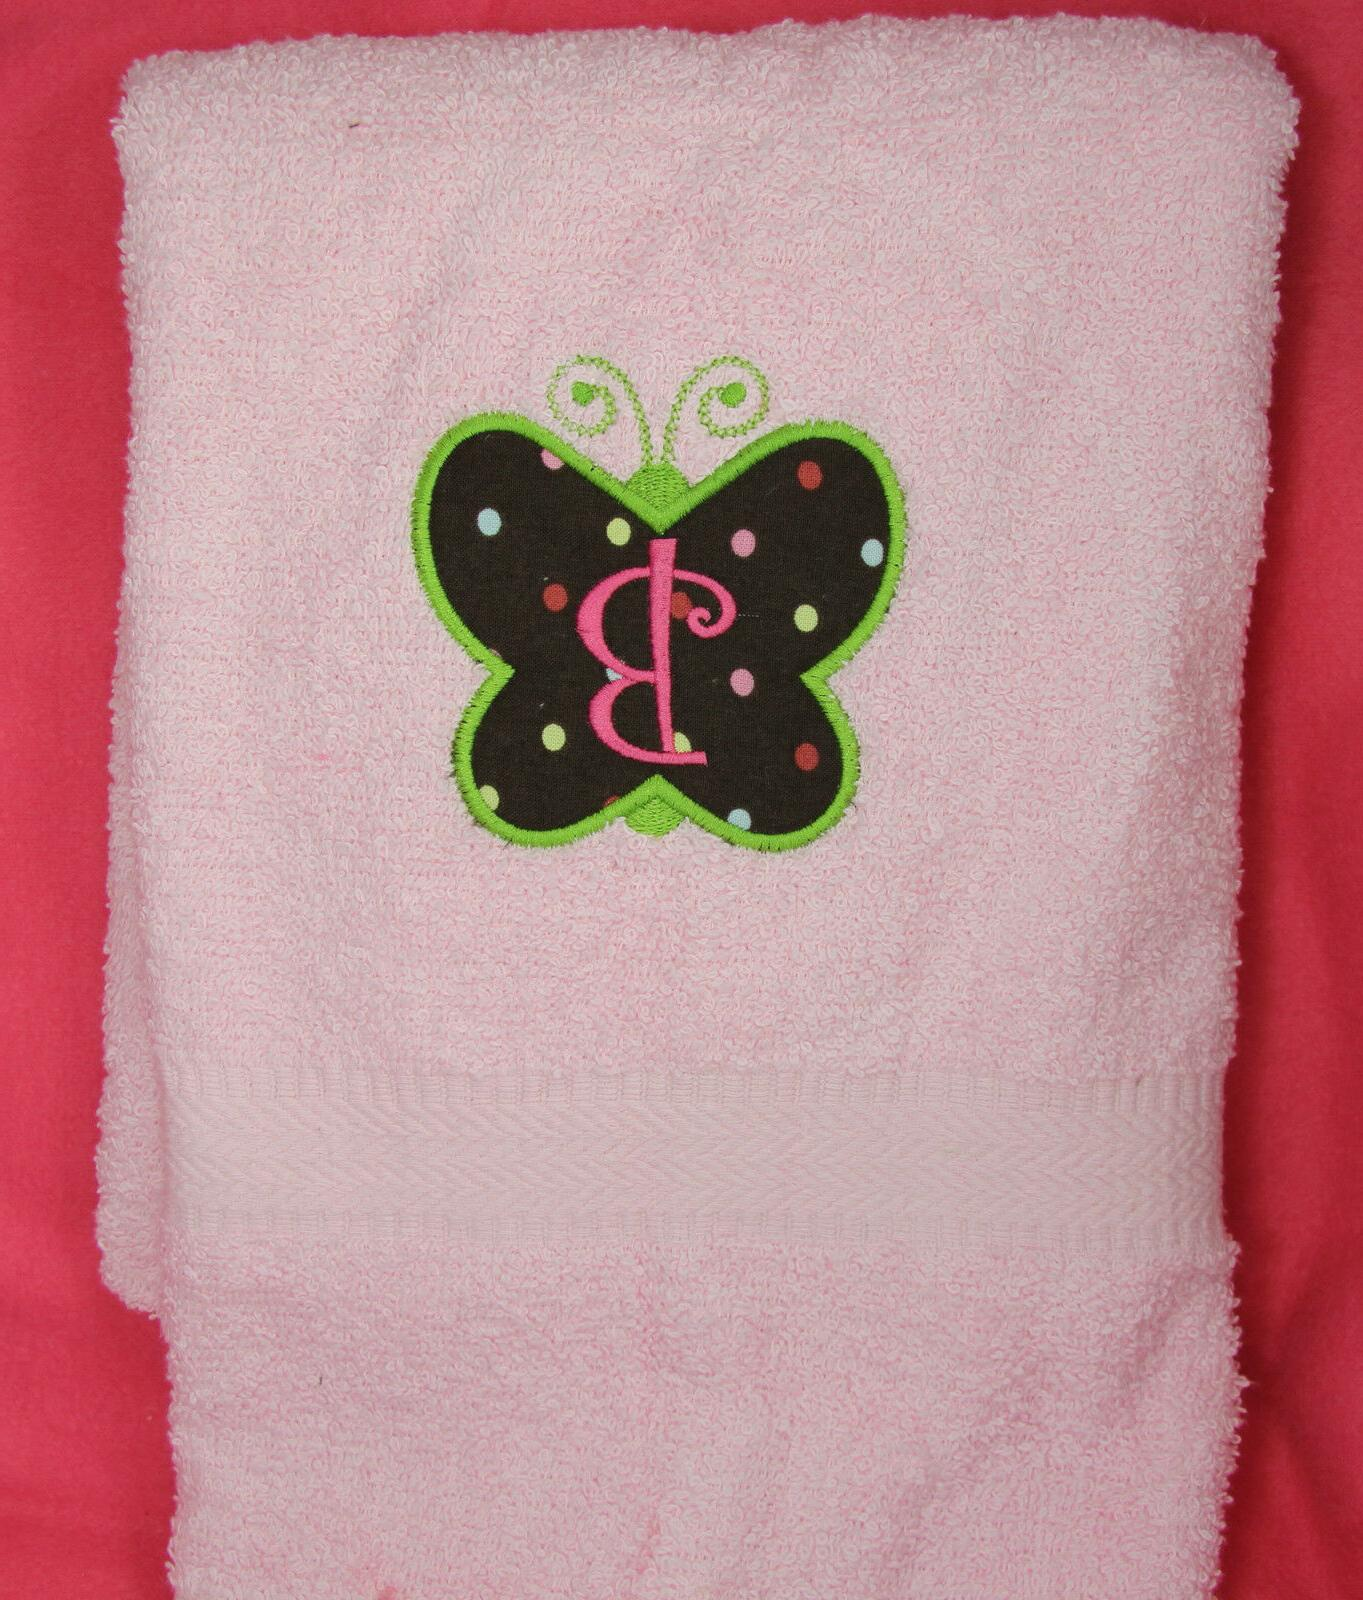 Personalized Embroidered Butterfly First Initial Applique Co